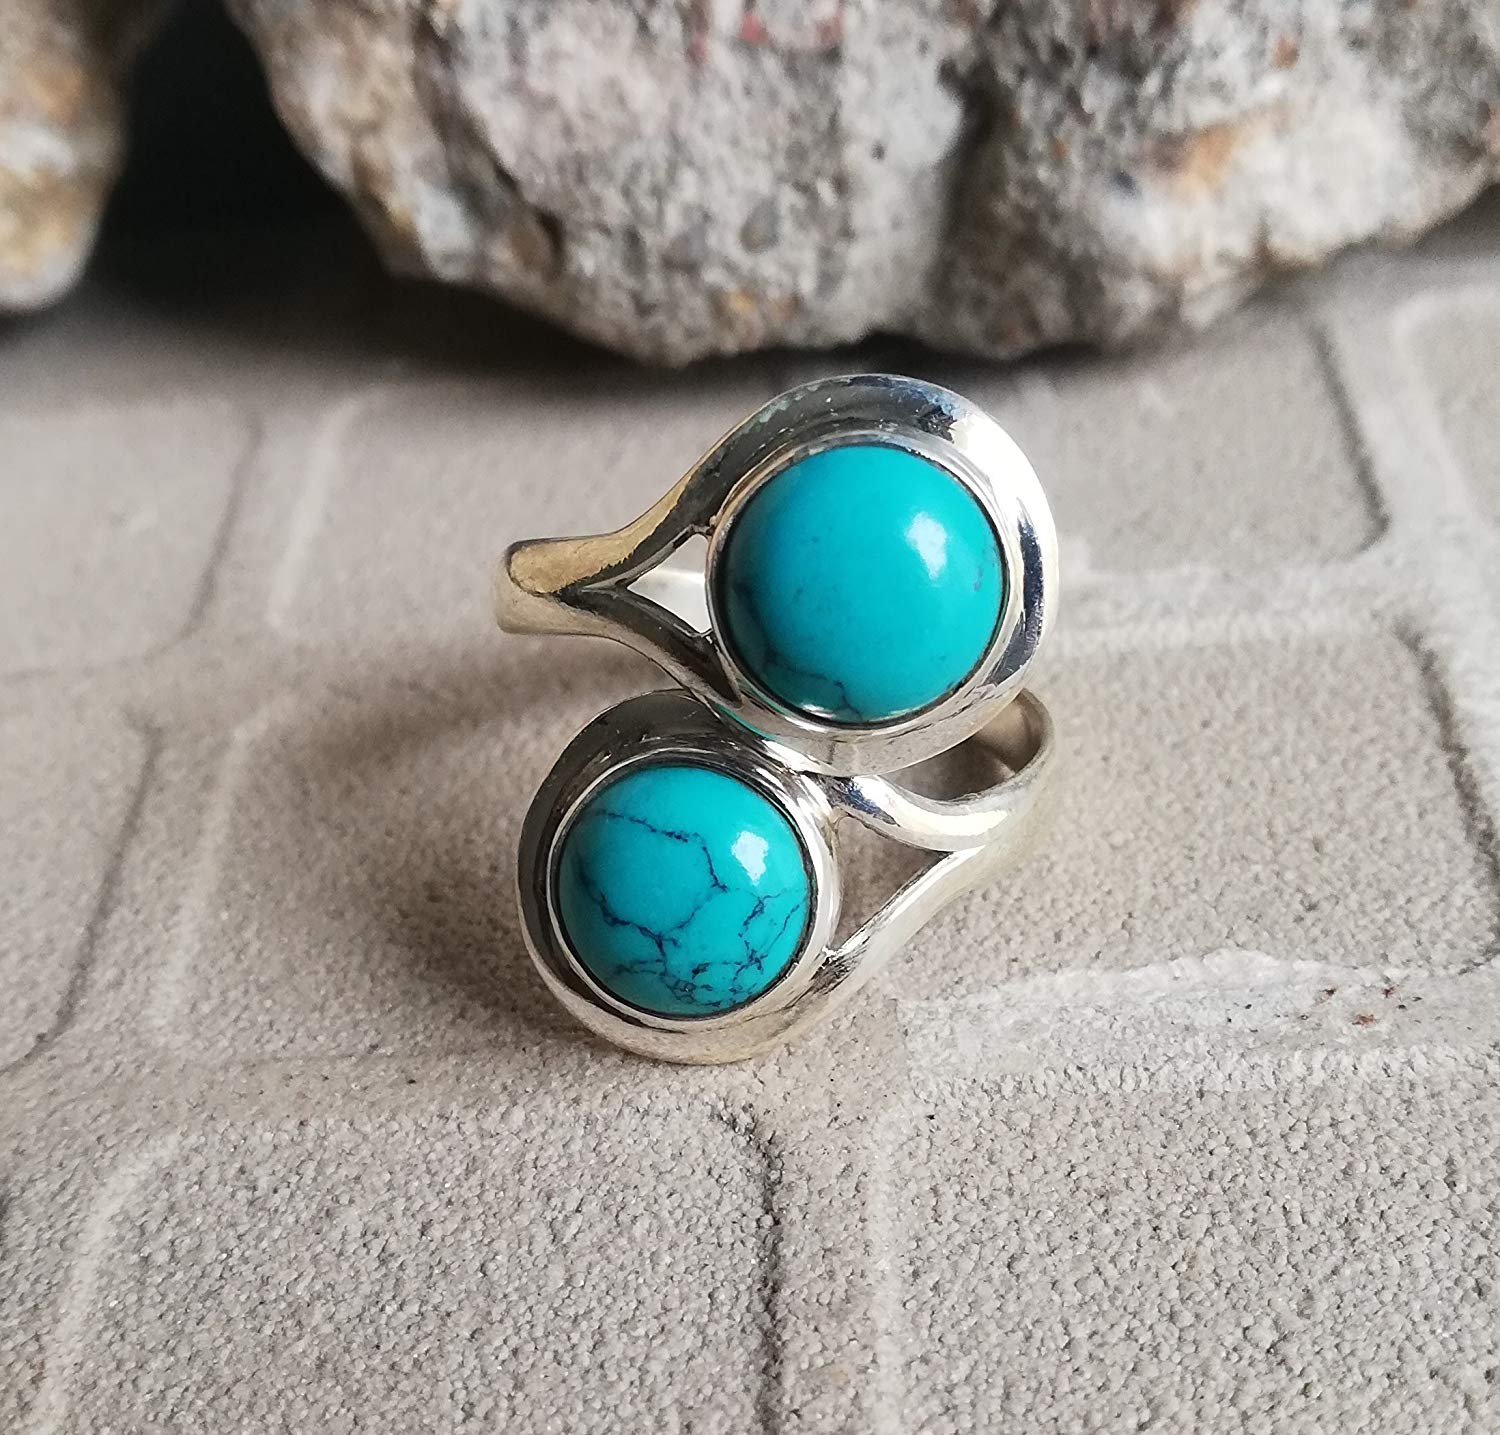 Turquoise Ring, 925 Sterling Silver, Outstanding Ring, Artisan Ring, Bezel Ring, Graduation Gift Ring, Ocean Ring, Ethnic Ring, Promise Ring, Friendship Ring, Two Stone Ring, Gift, US All Size Ring